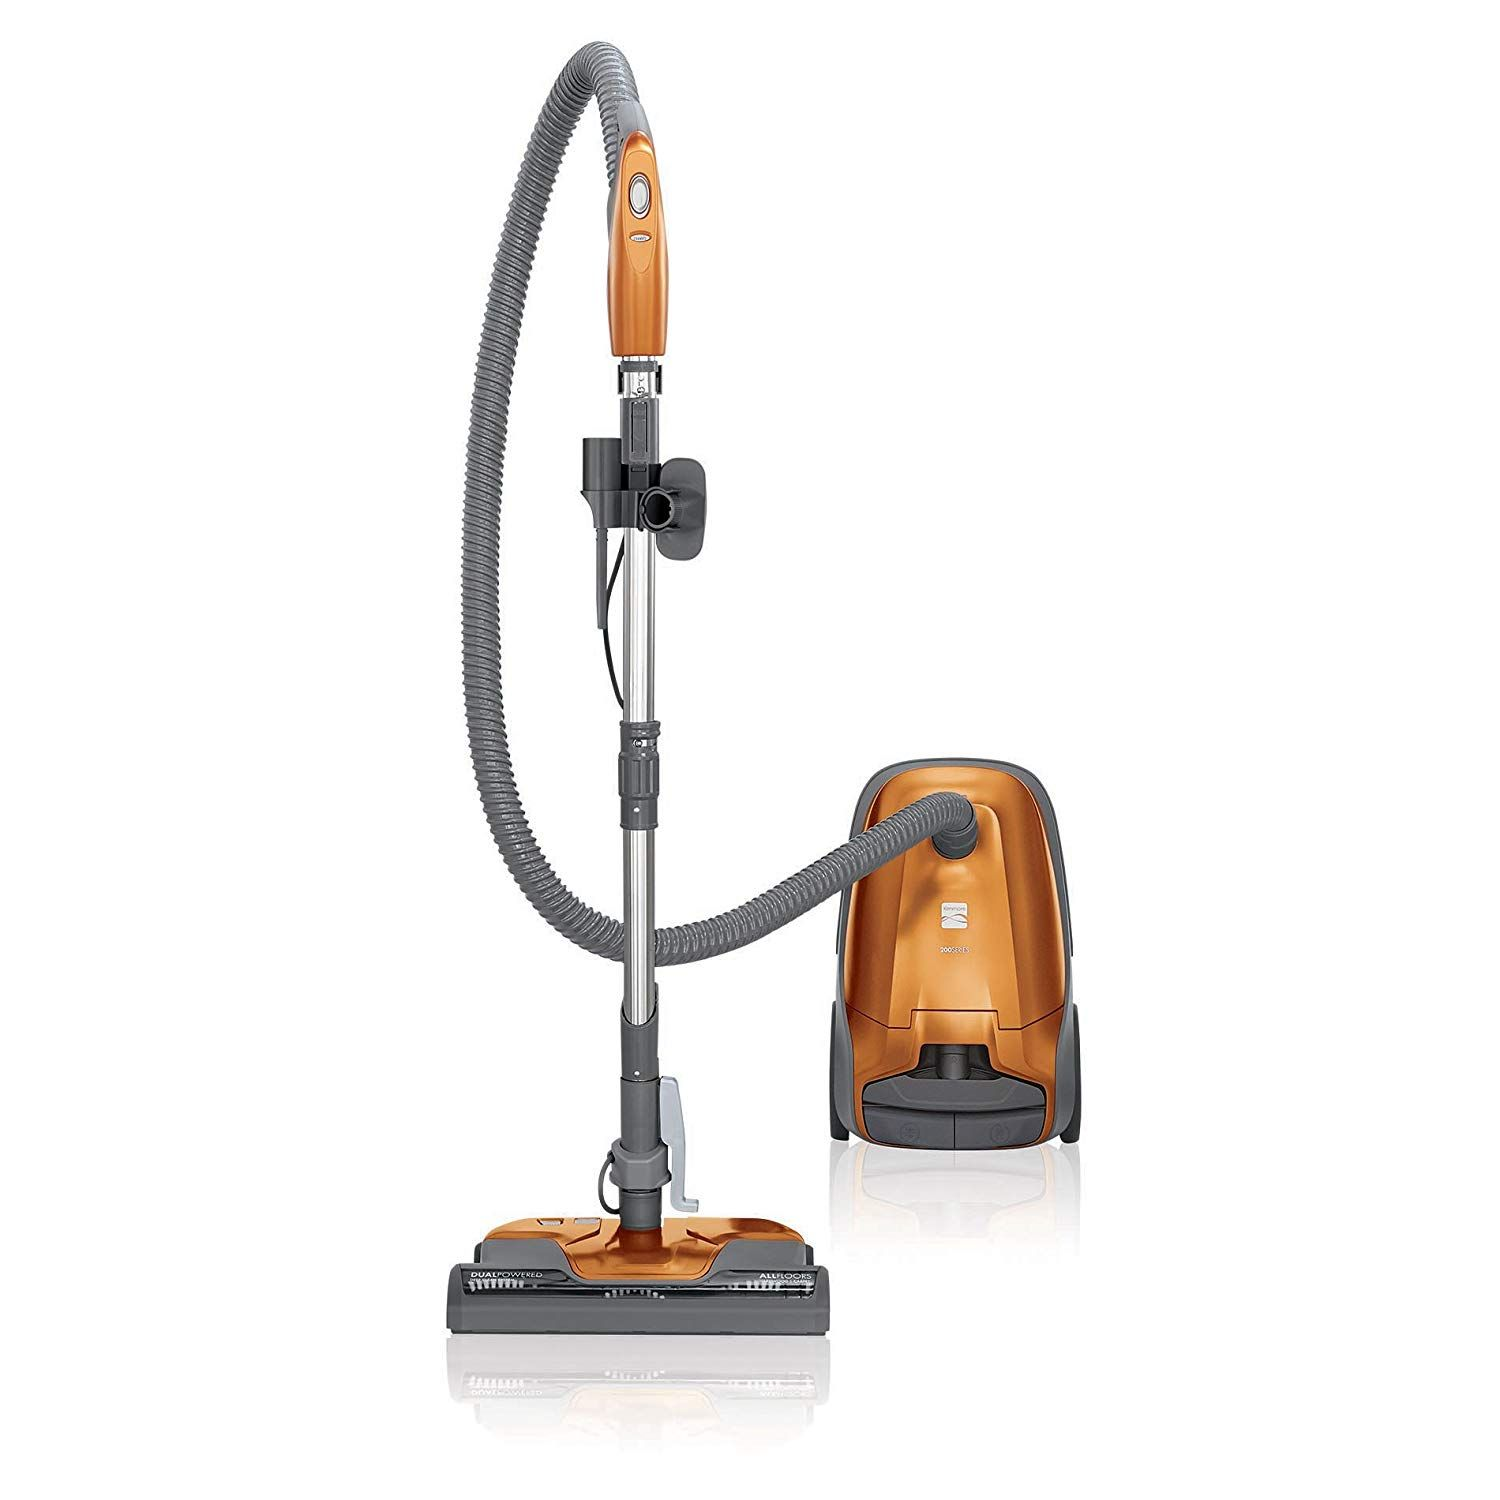 Powerful yet lightweight this vacuum features a hepa